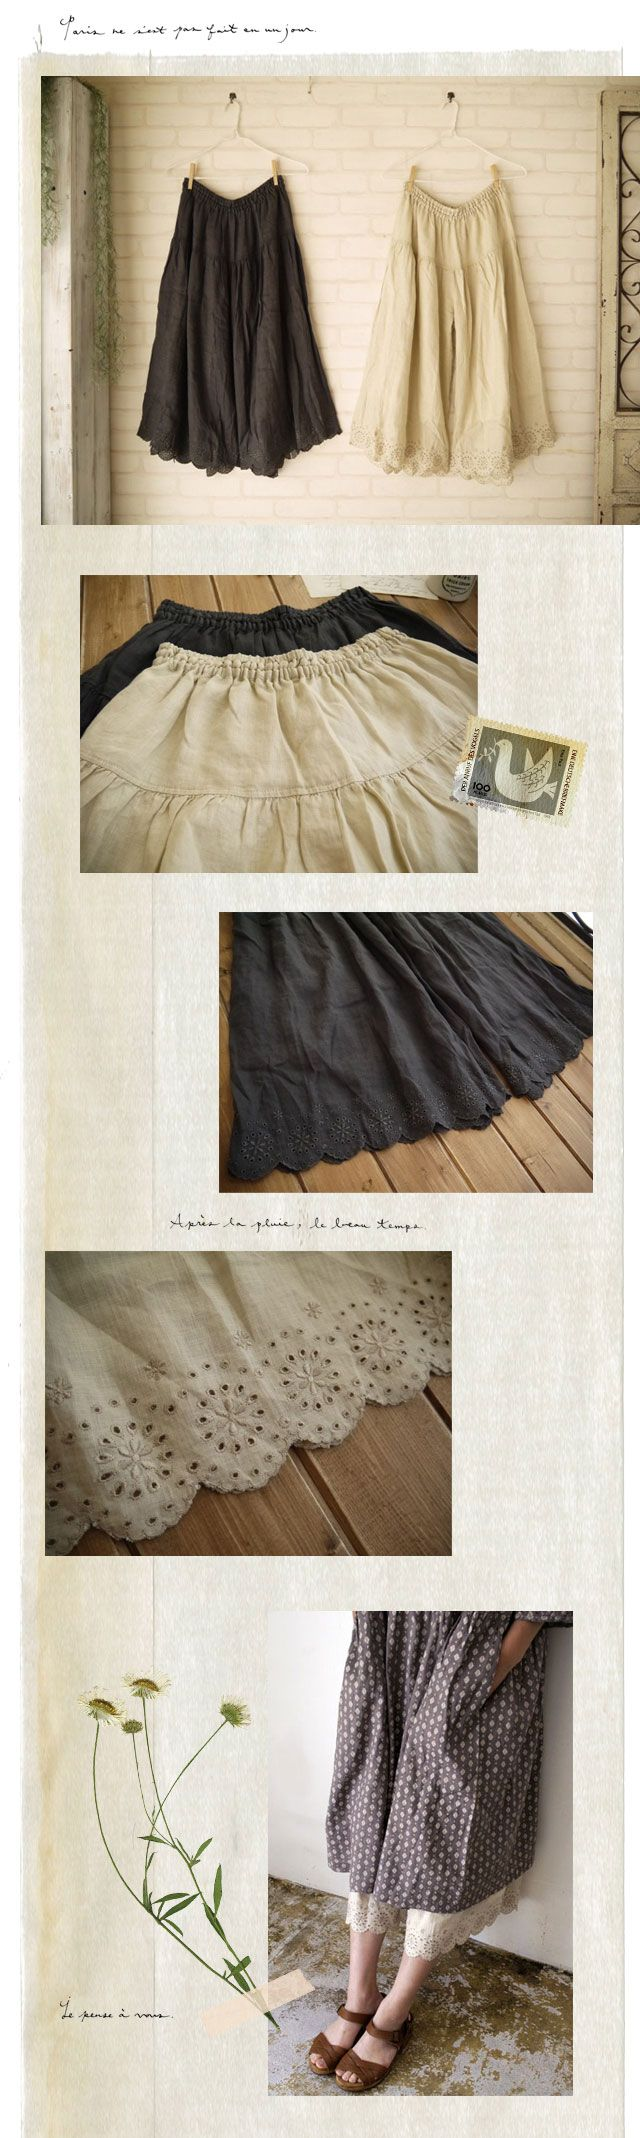 armoire linen scalloped embroidery culottes Melody House japan fashion mori kei